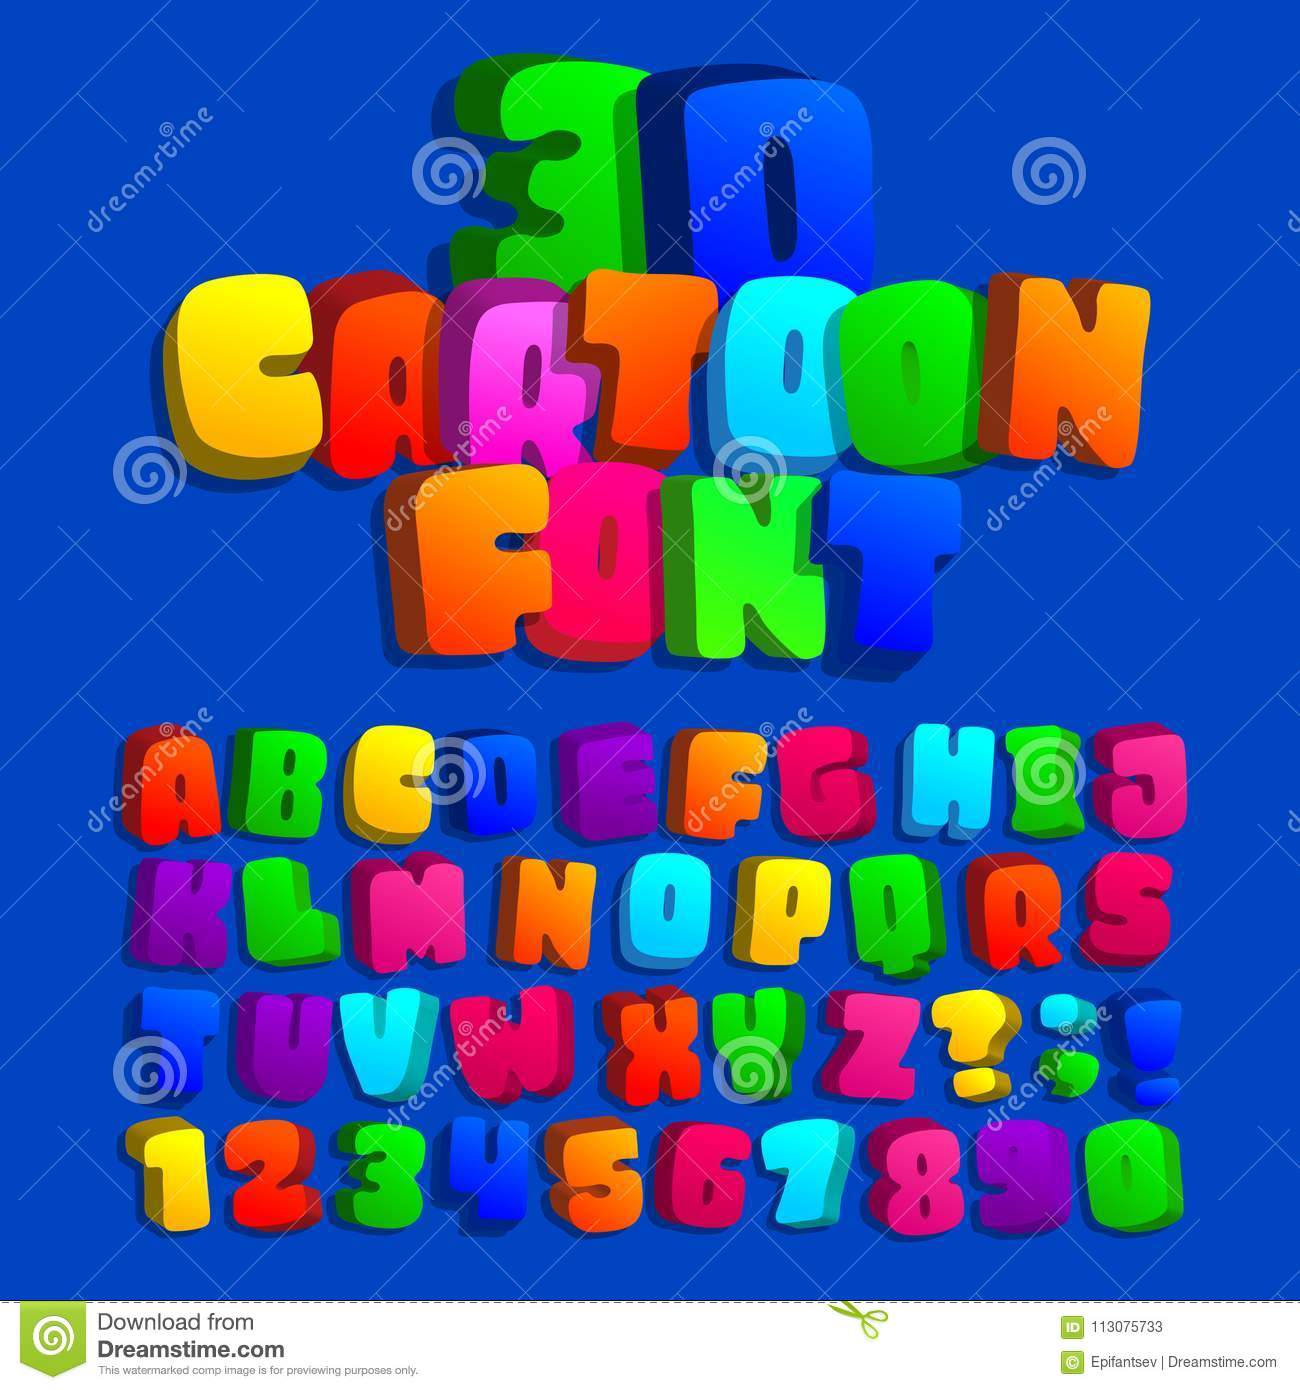 Download D Cartoon Alphabet Font Kids Funny Colorful Letters Numbers And Symbols Stock